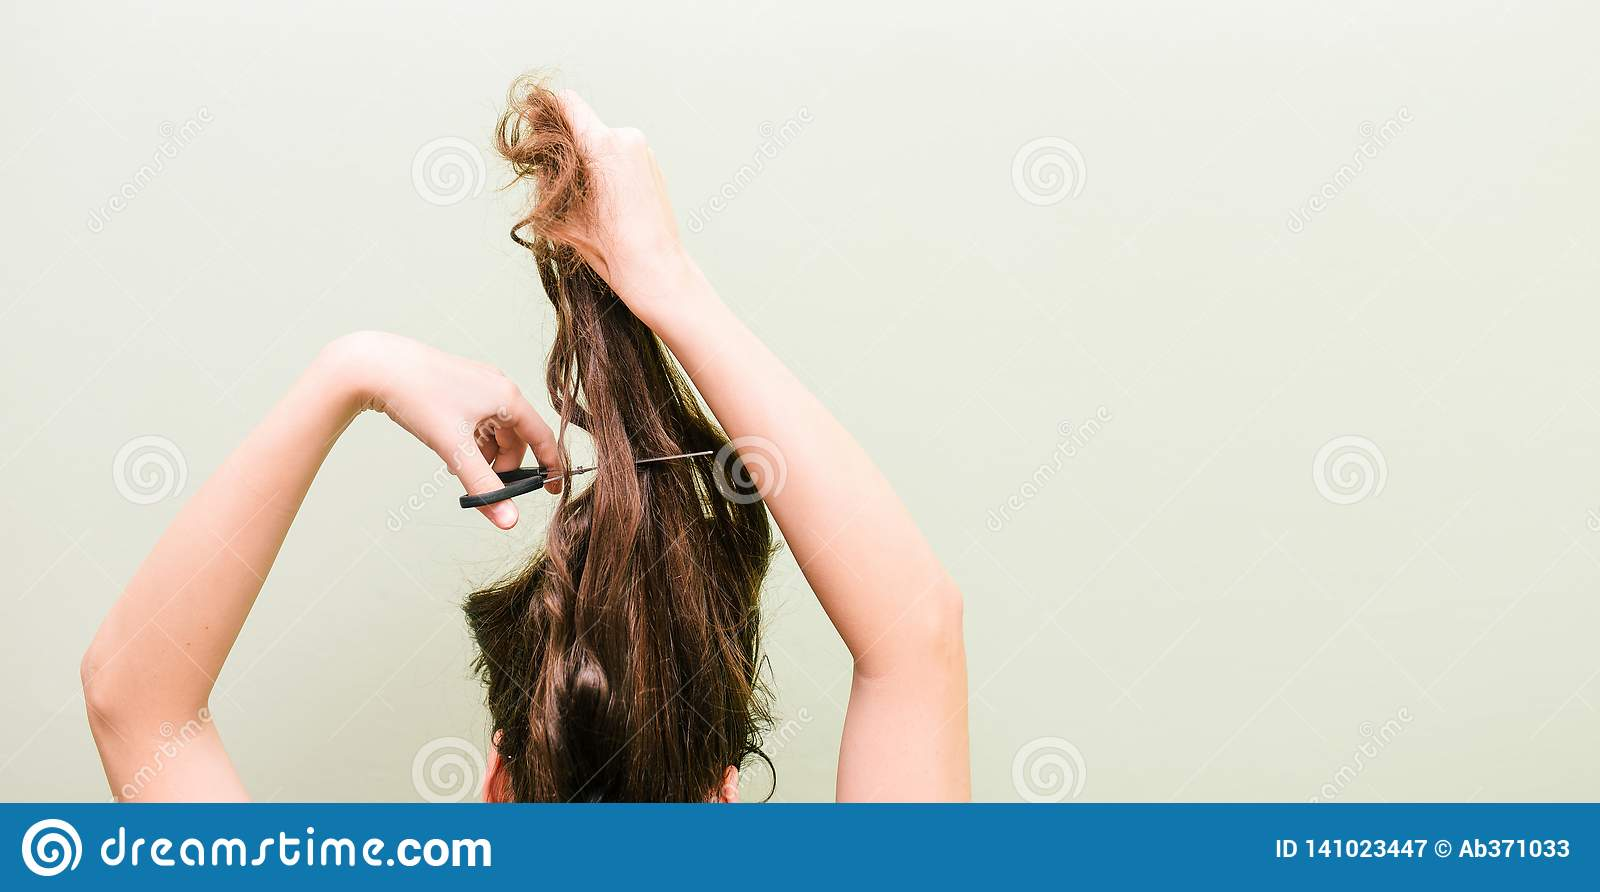 The girl cuts her hair with scissors. The concept of fashion and care. Woman cuts her long hair